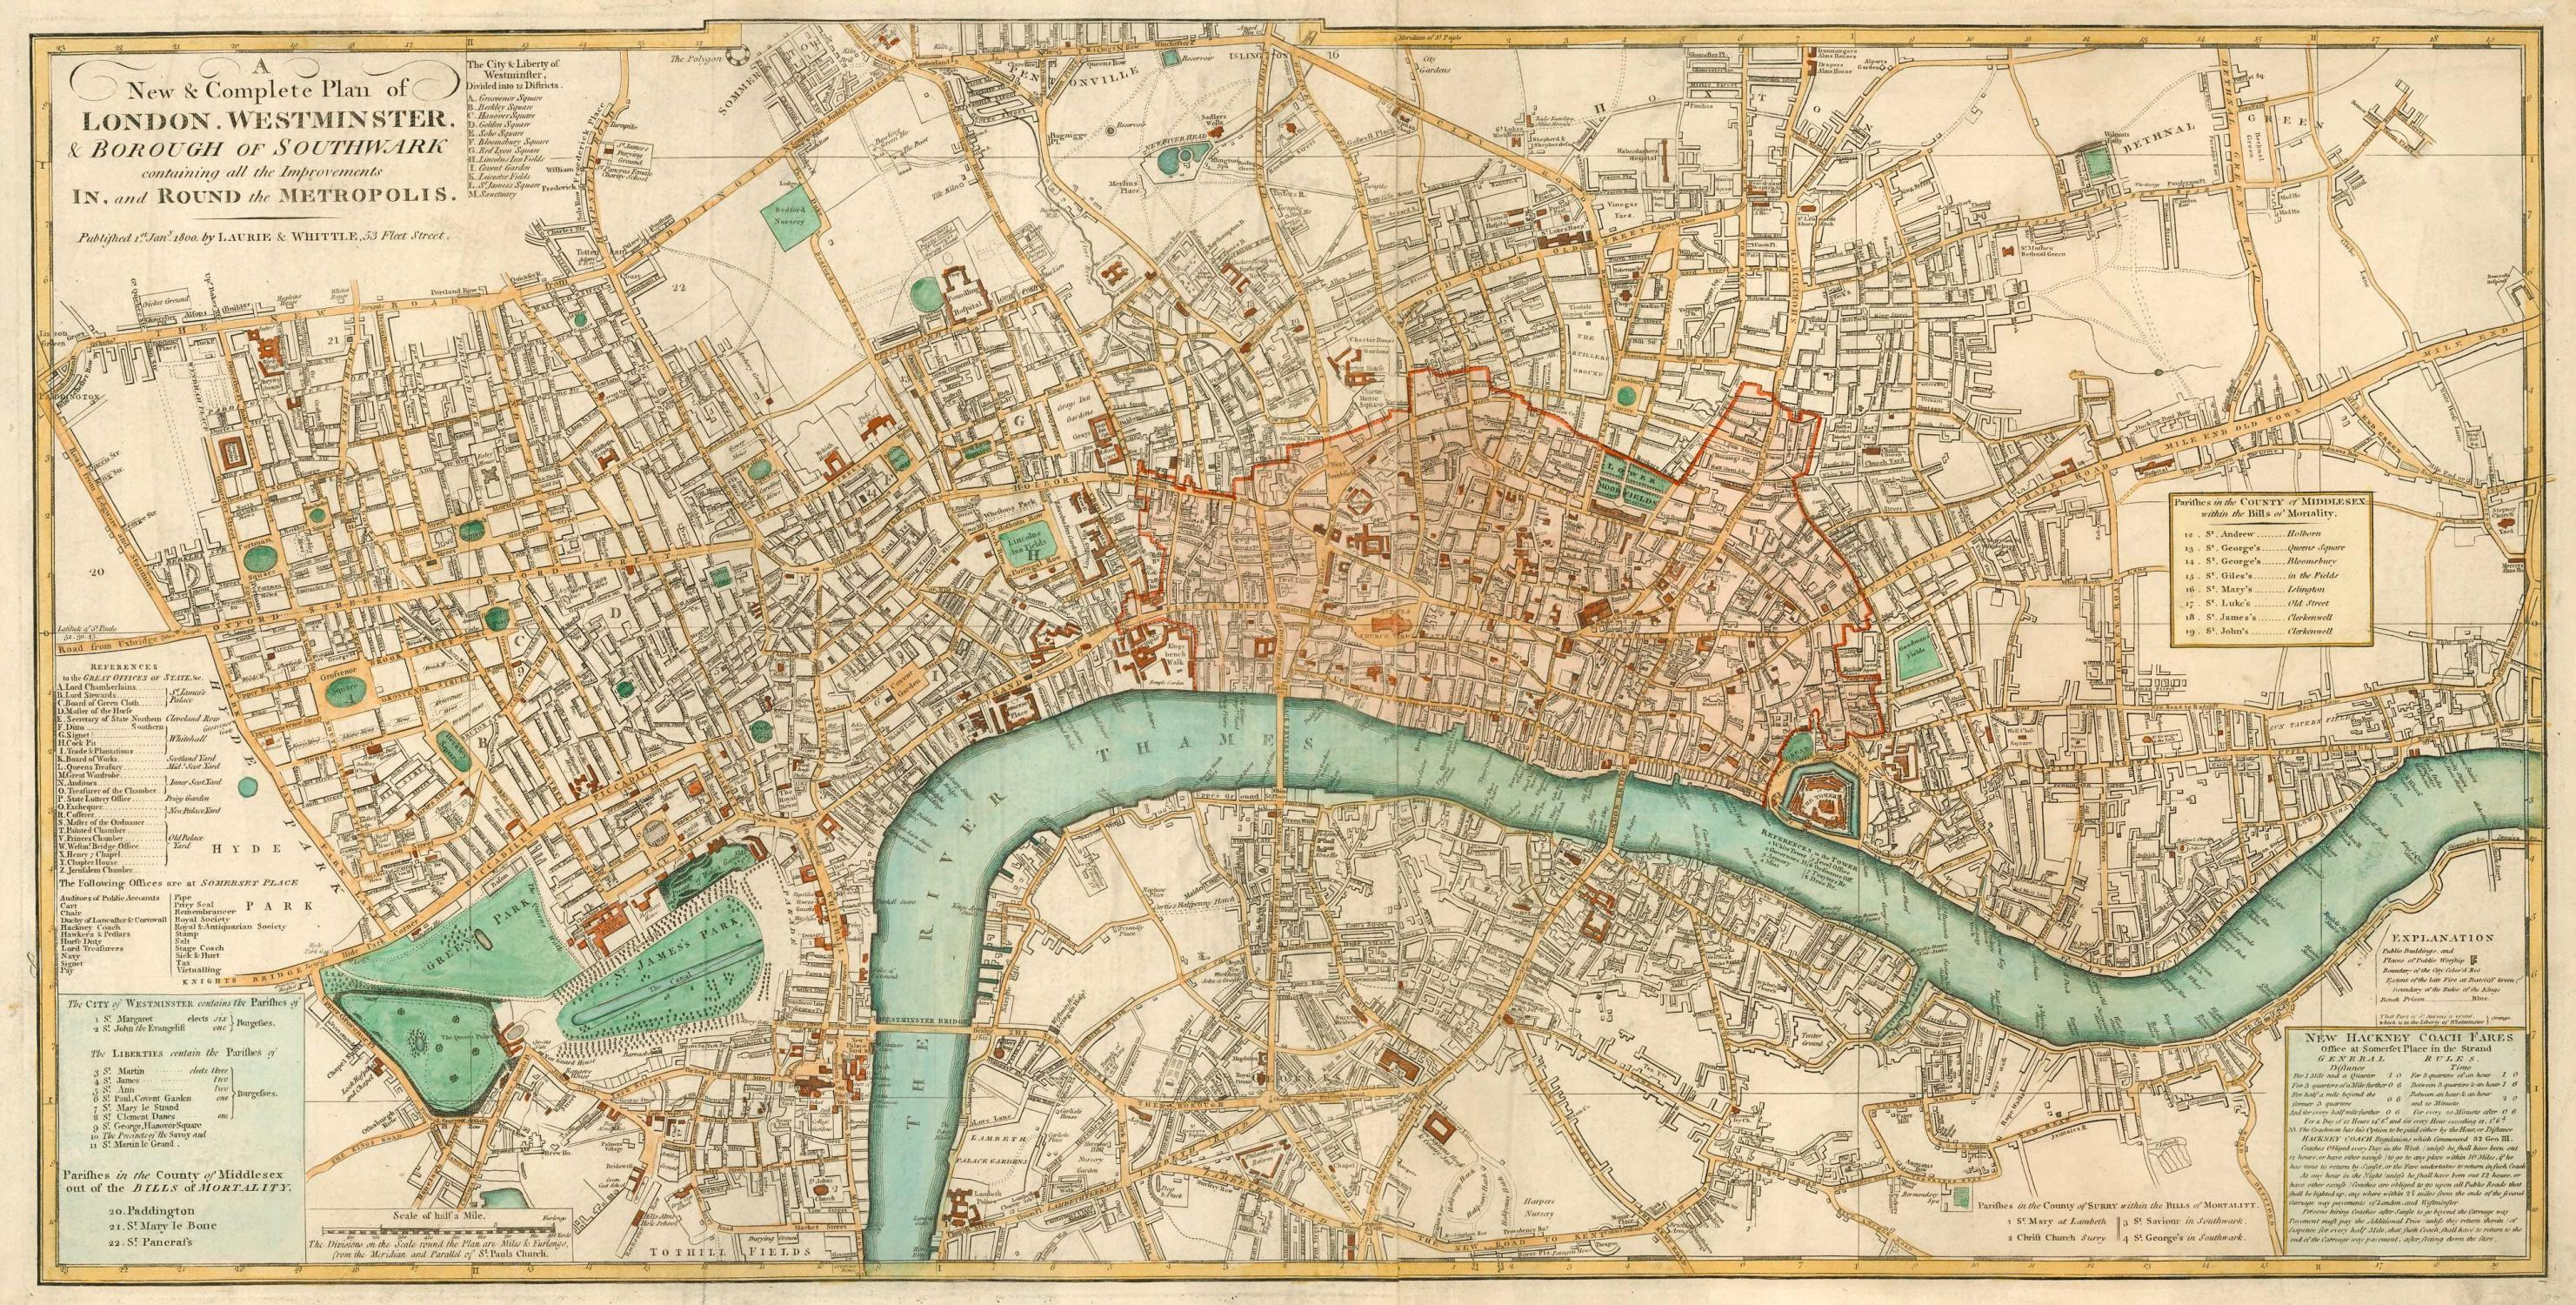 A New Complete Plan Of London Westminster Borough Of Southwark Containing All The Improvements In And Round The Metropolis By Laurie Whittle 1800 Map Altea Antique Maps